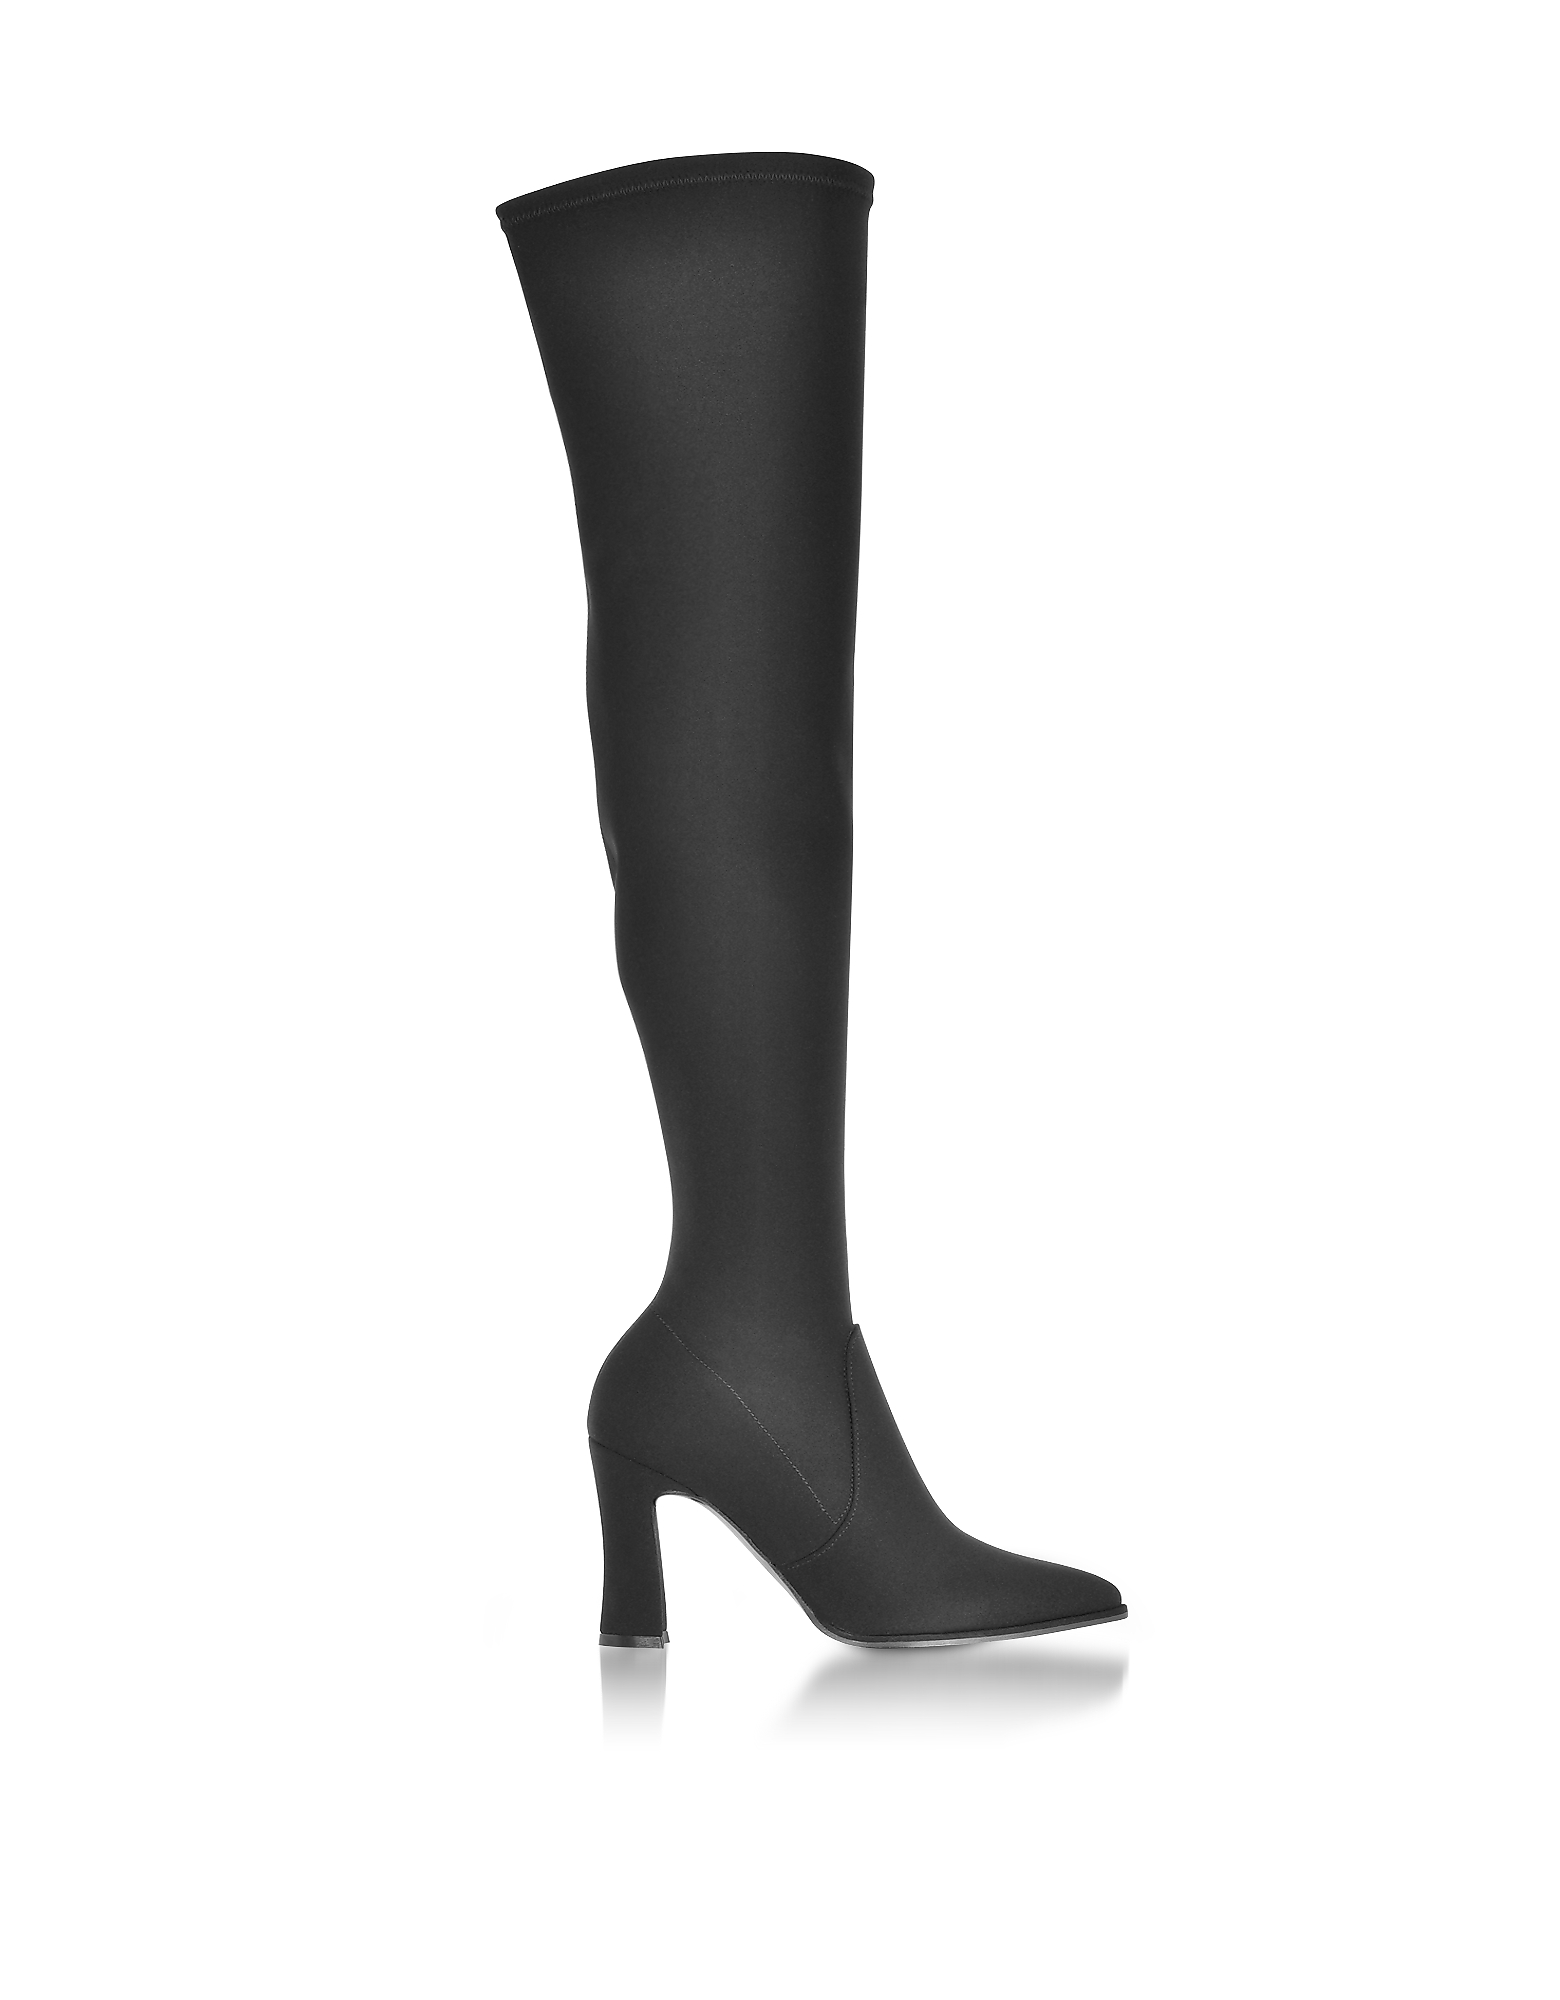 Hirise Black Micro Stretch Fabric High Heel Over The Knee Boots